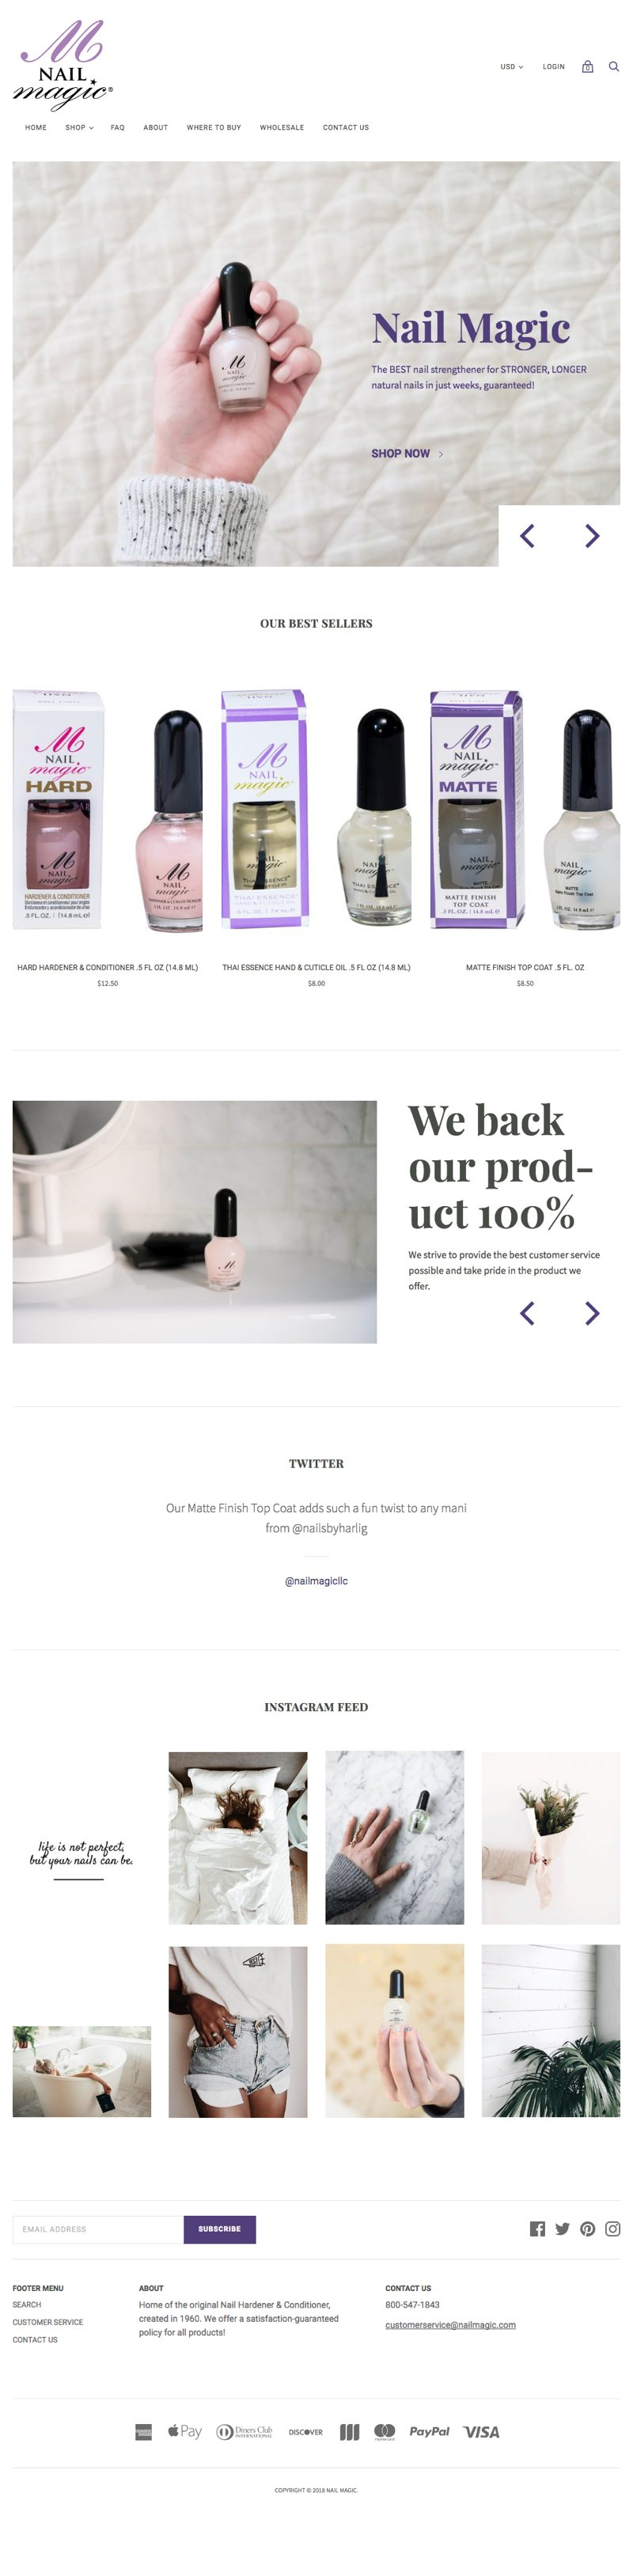 Nail Magic Website - Home